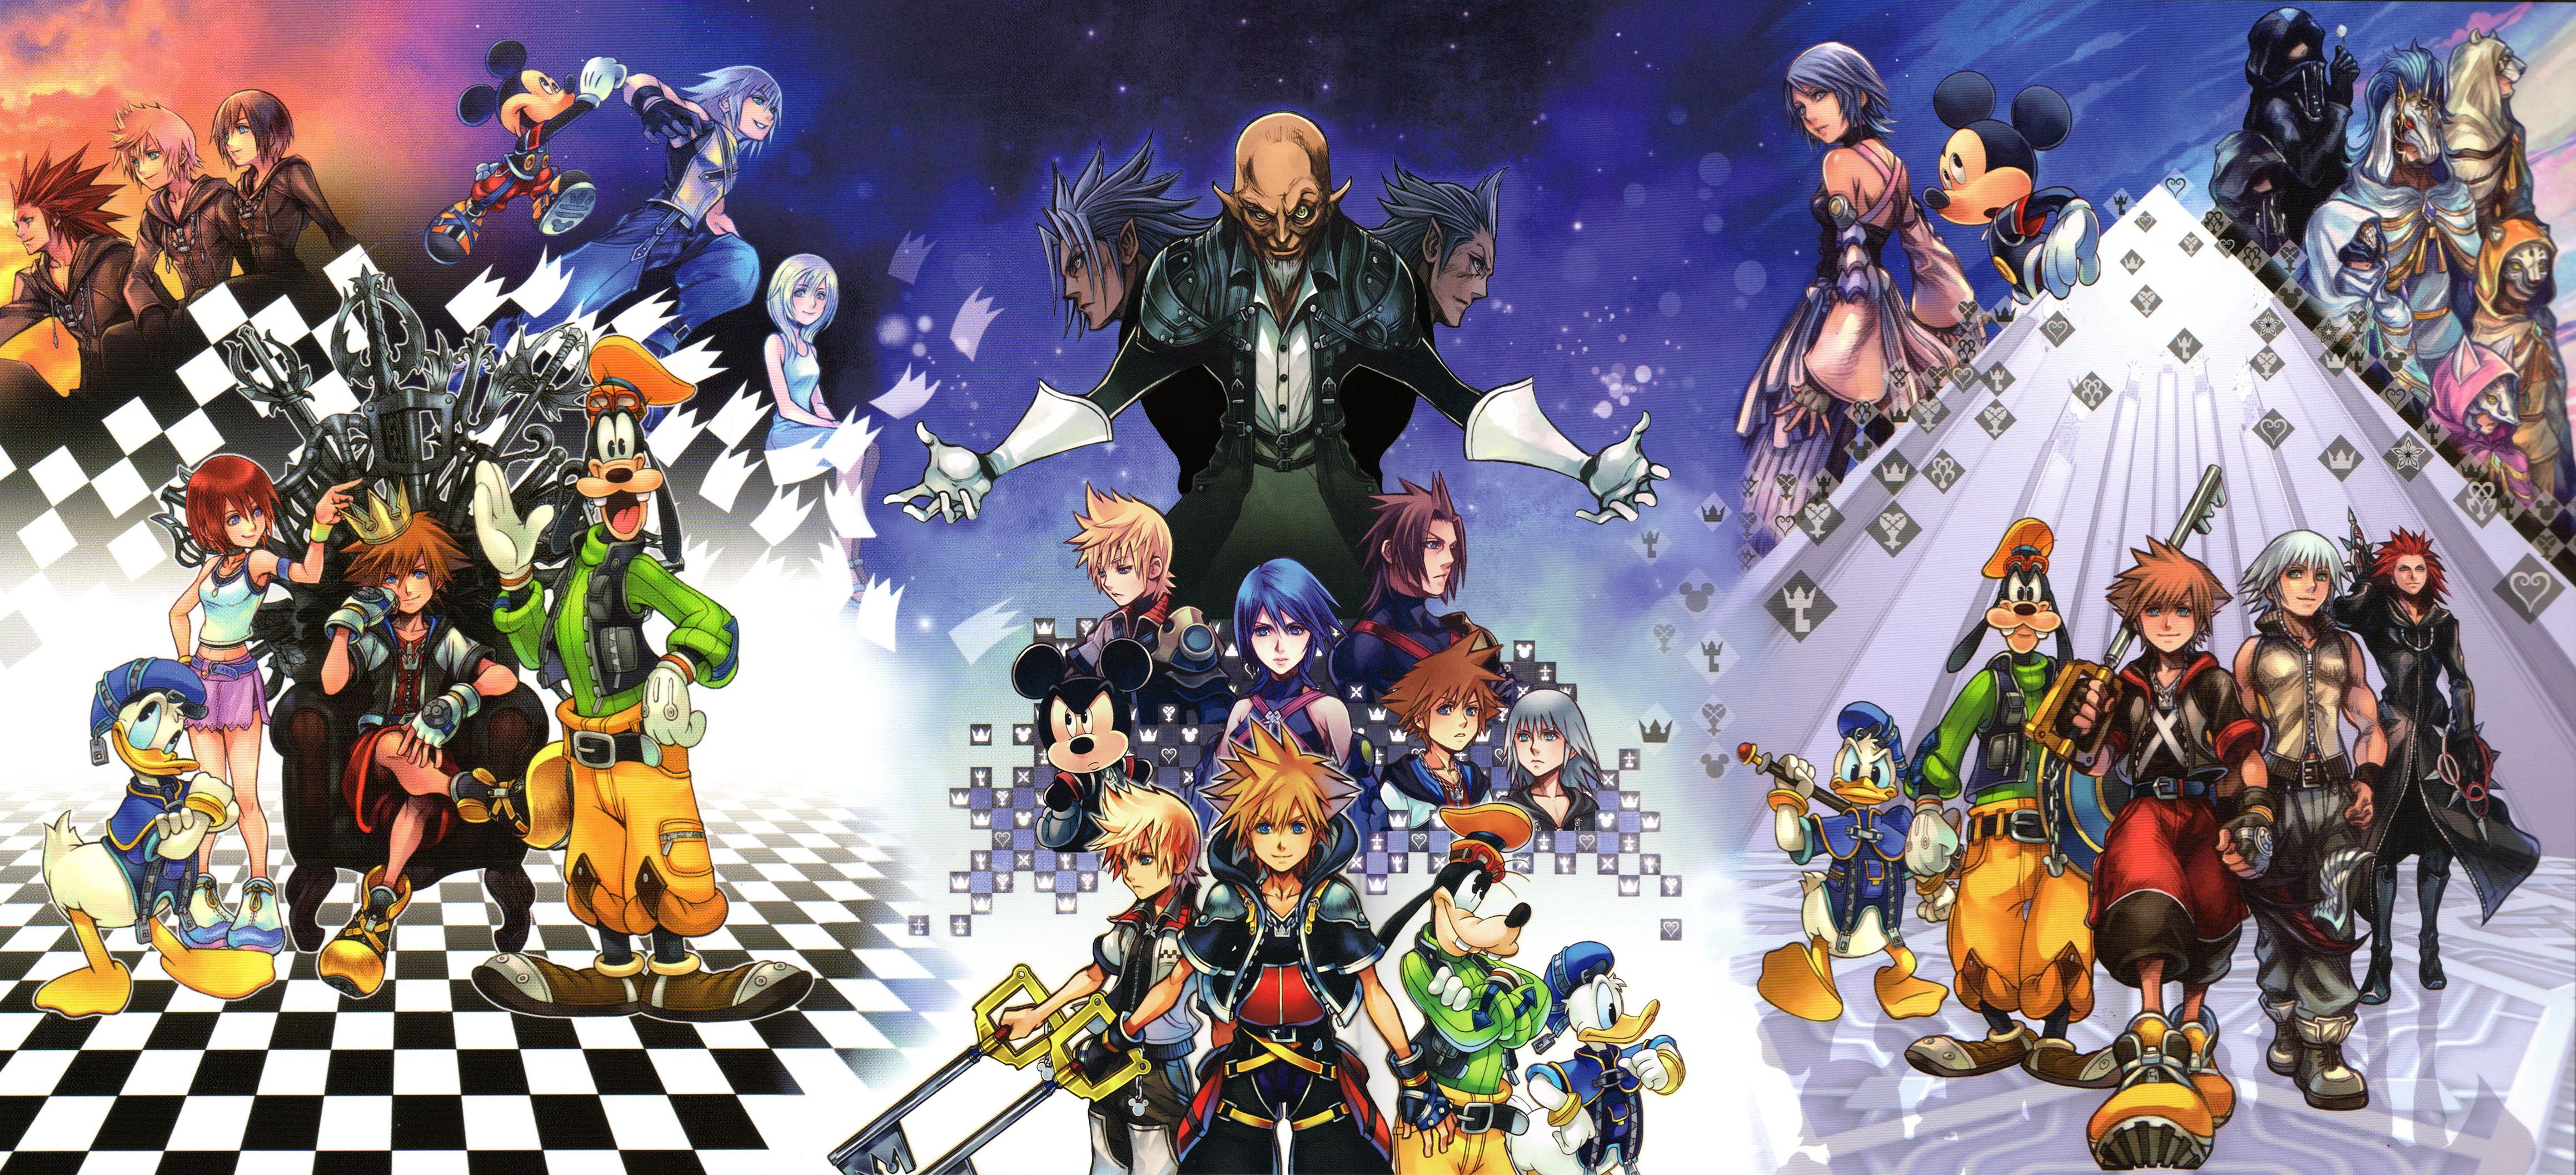 Square Enix Releases Patch To Fully Unlock Share Functions In Kh